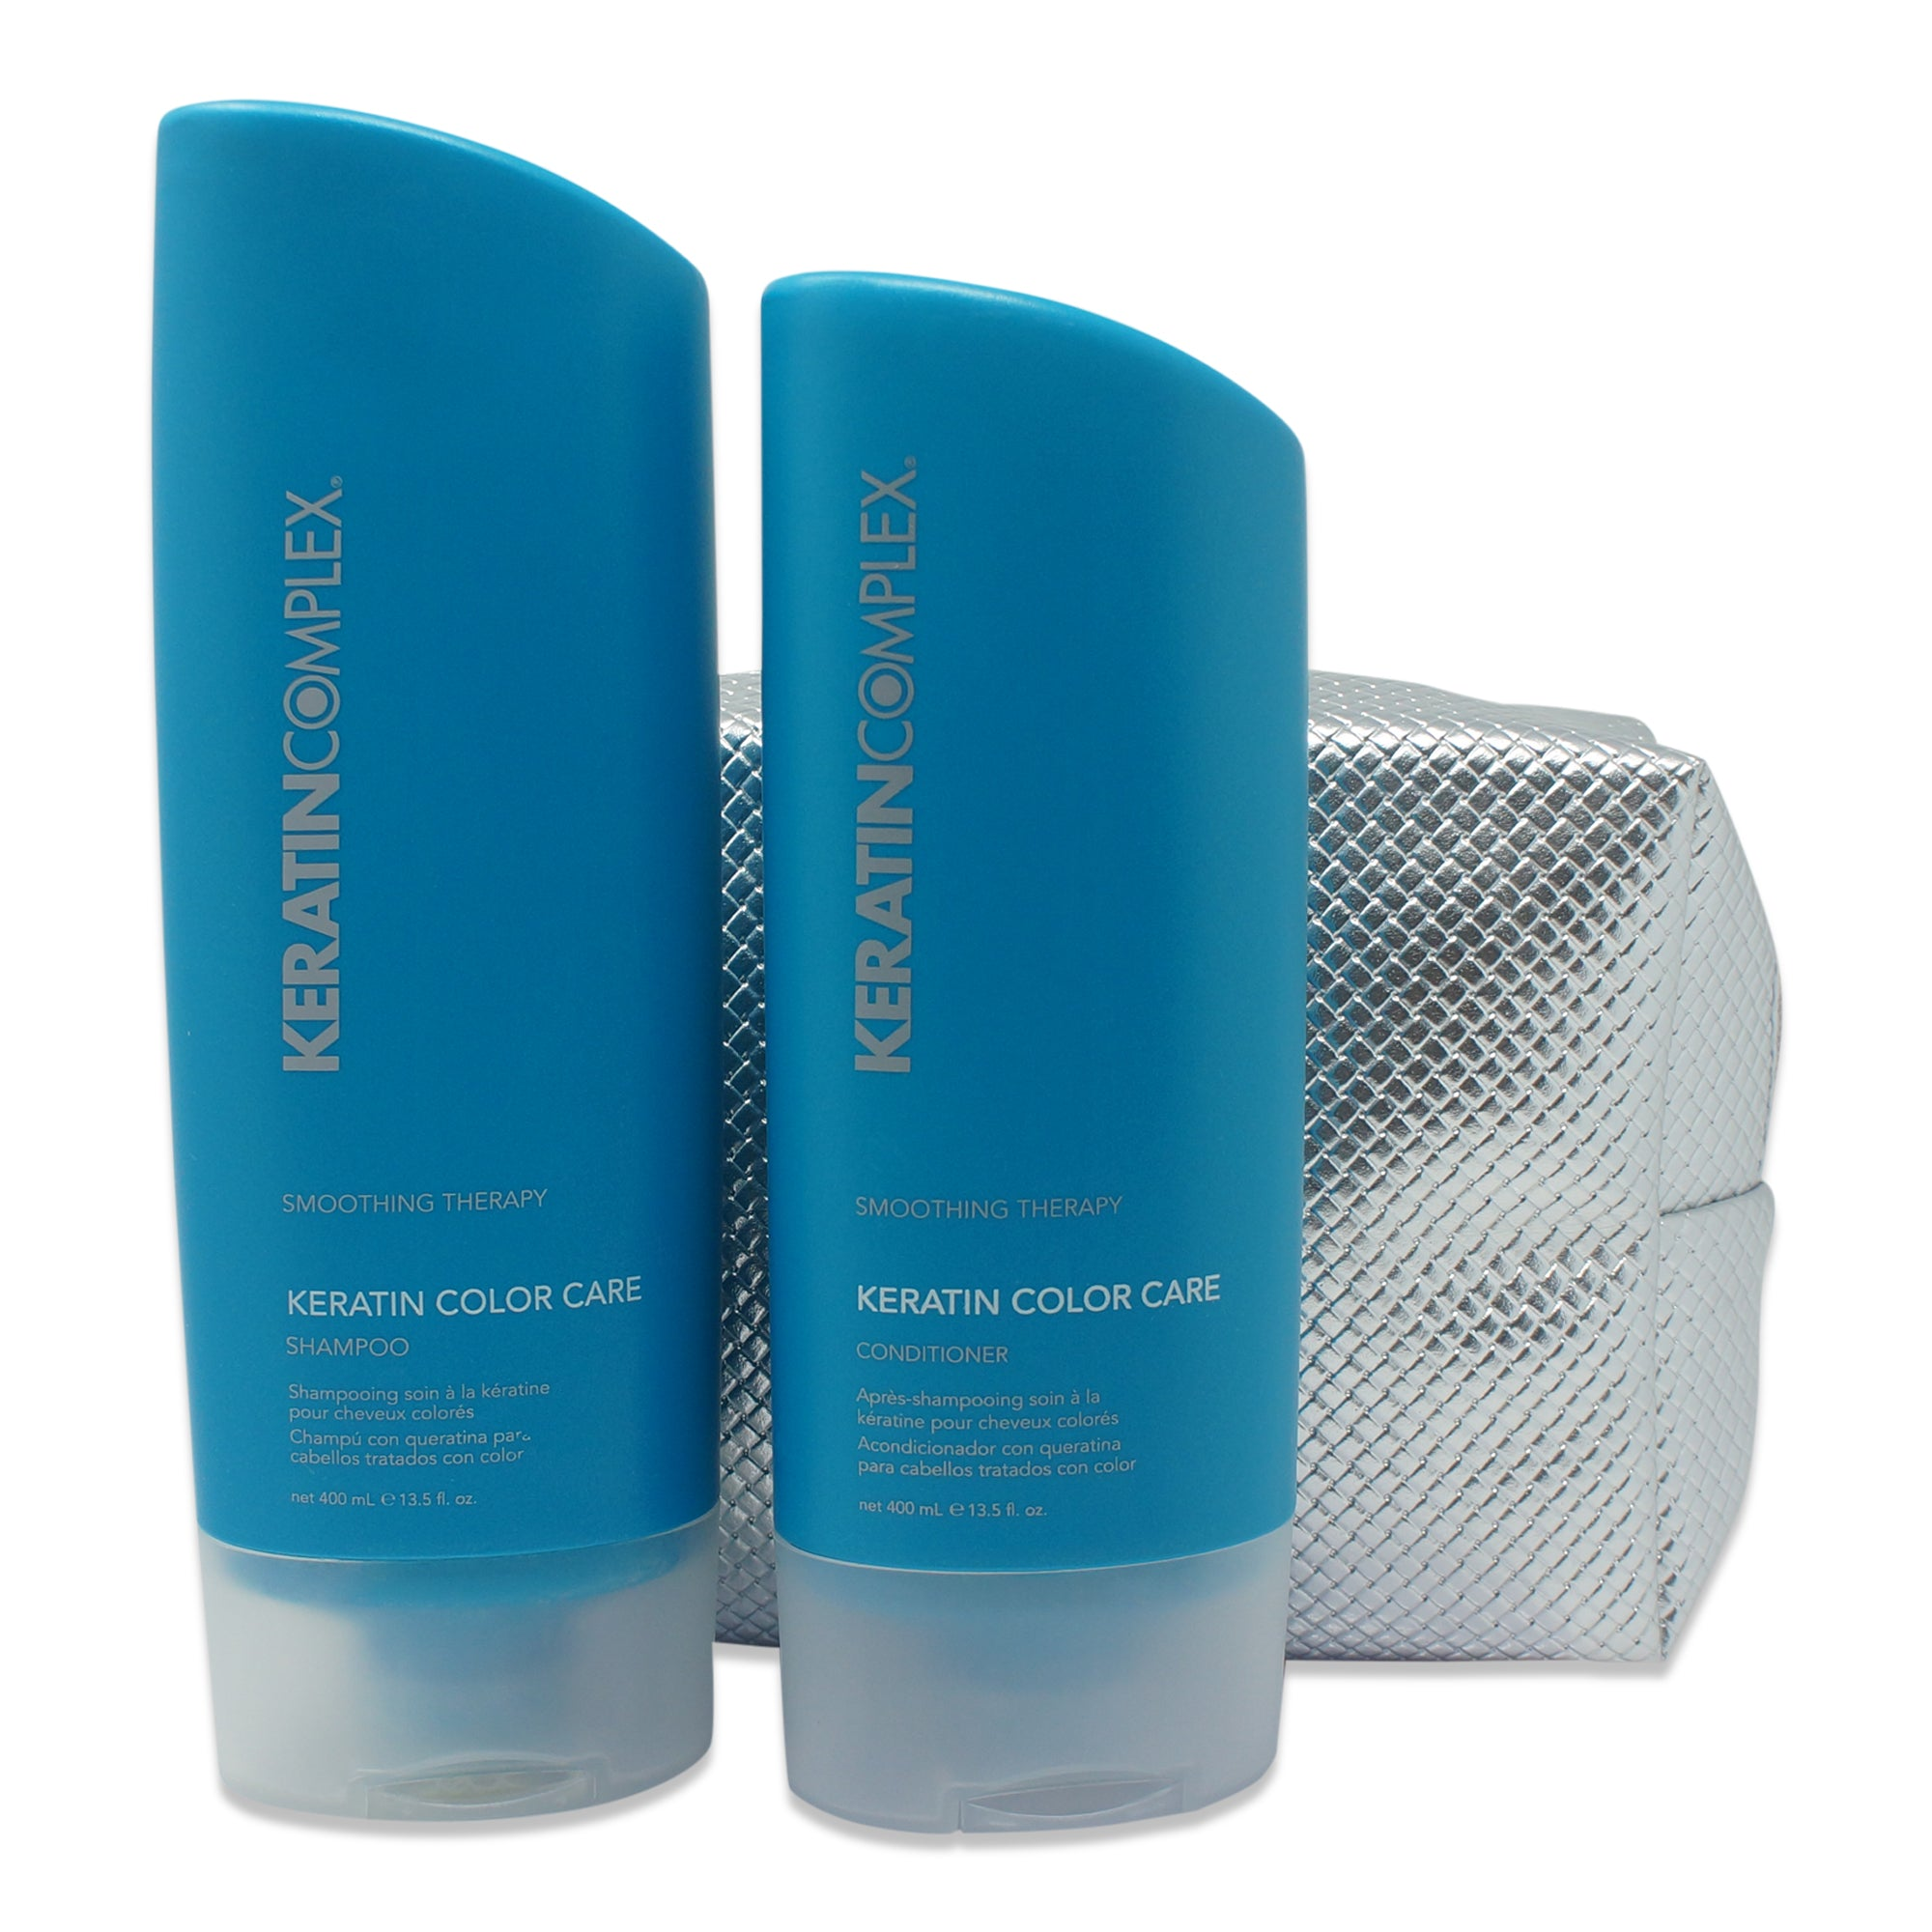 Keratin Complex Keratin Color Care Shampoo And Conditioner Combo 13 5 Oz With Free Makeup Bag